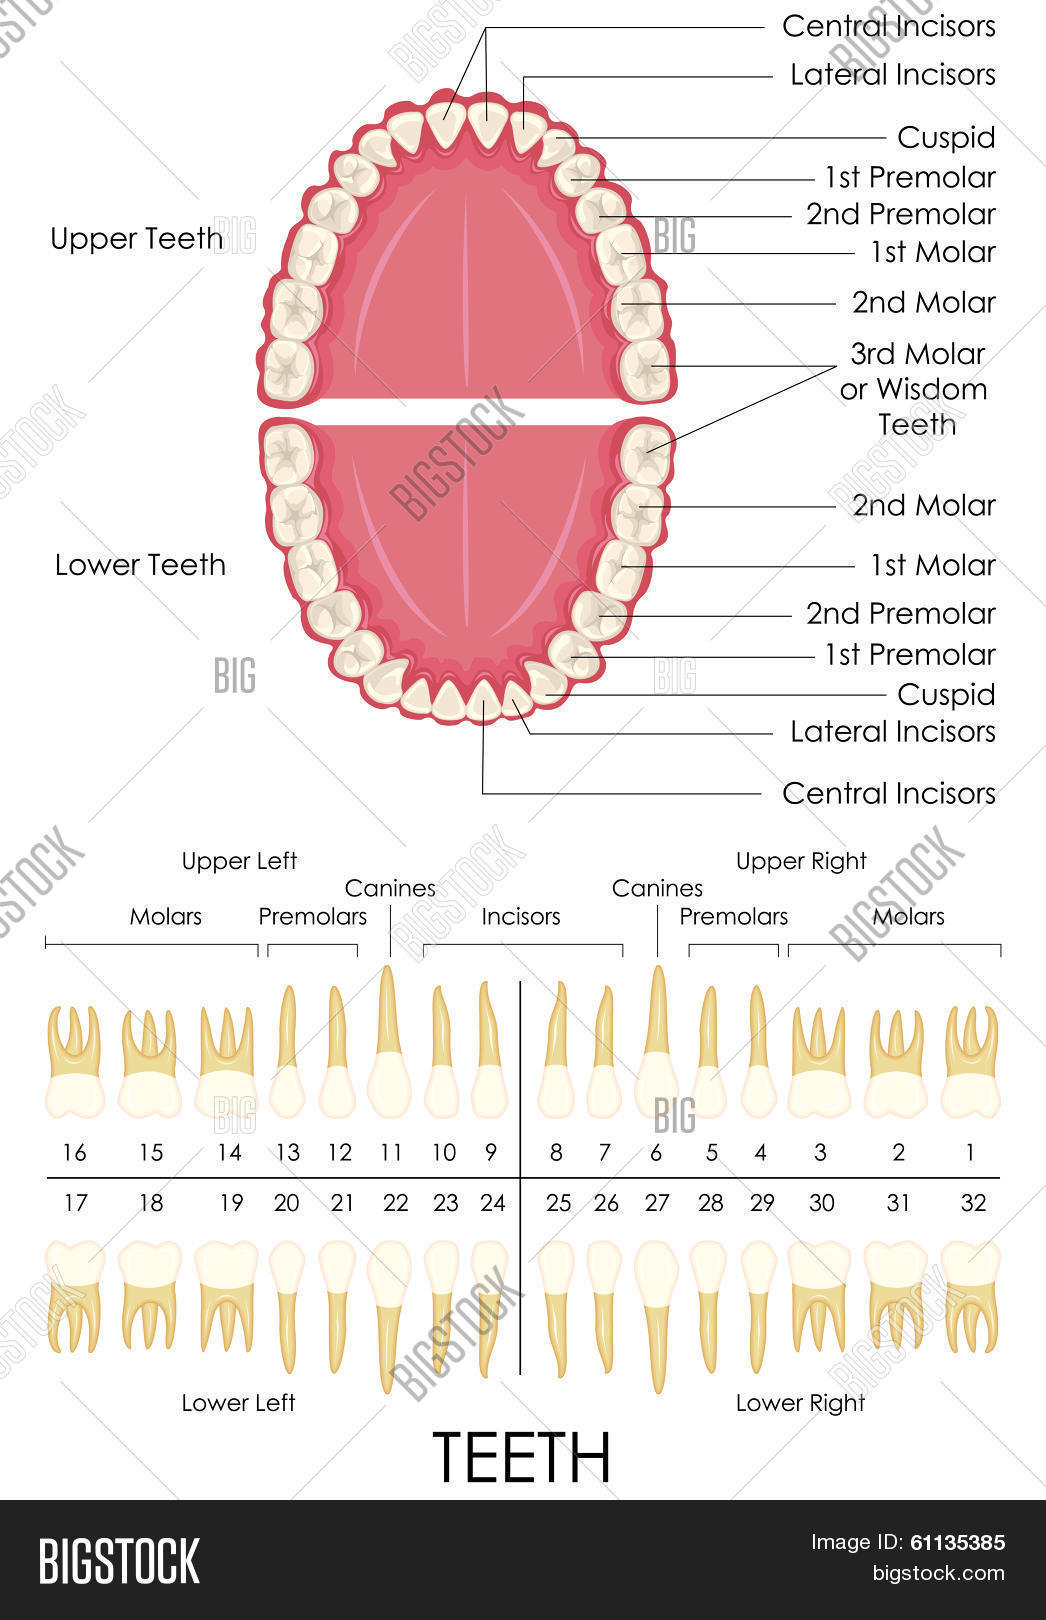 Human Dental Anatomy Vector & Photo (Free Trial) | Bigstock